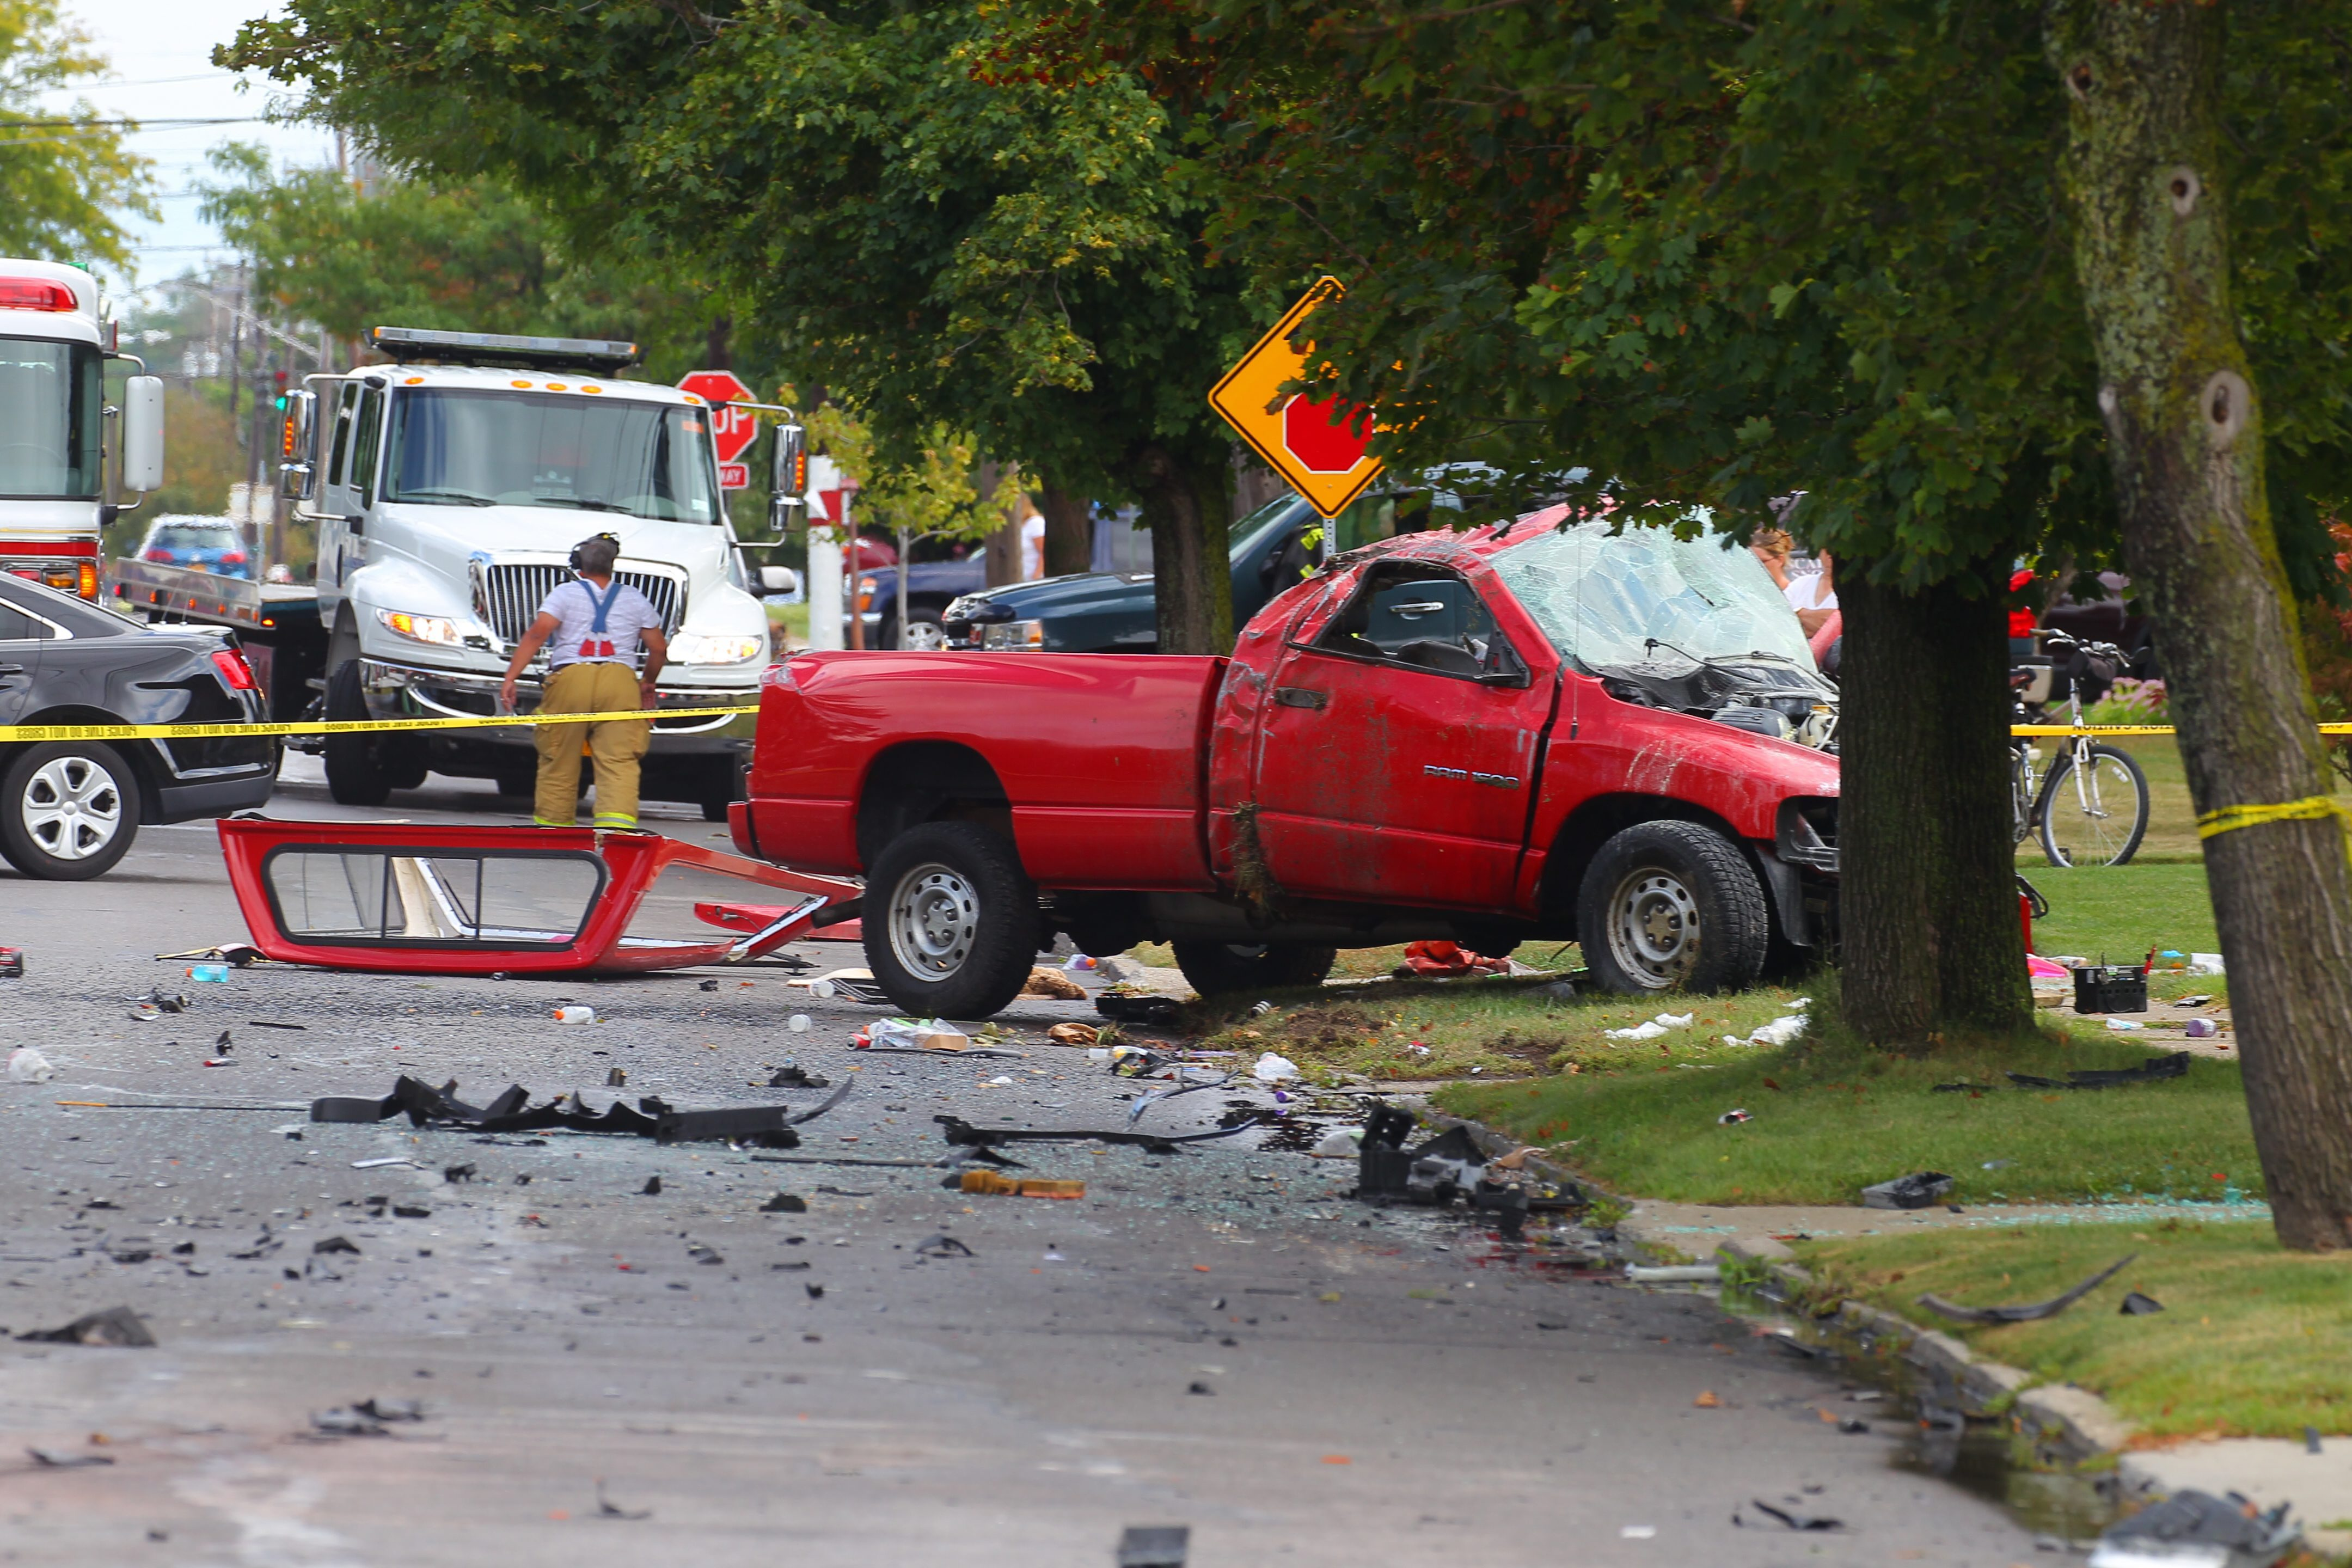 The wreckage of a sedan and a pickup truck after a collision, that that left one driver dead, and two injured on French Road between Beverly Drive and Alys Drive E. in Depew, N.Y., on Wednesday, Sept. 9, 2015.Depew Police are conducting an investigation. (John Hickey/Buffalo News)